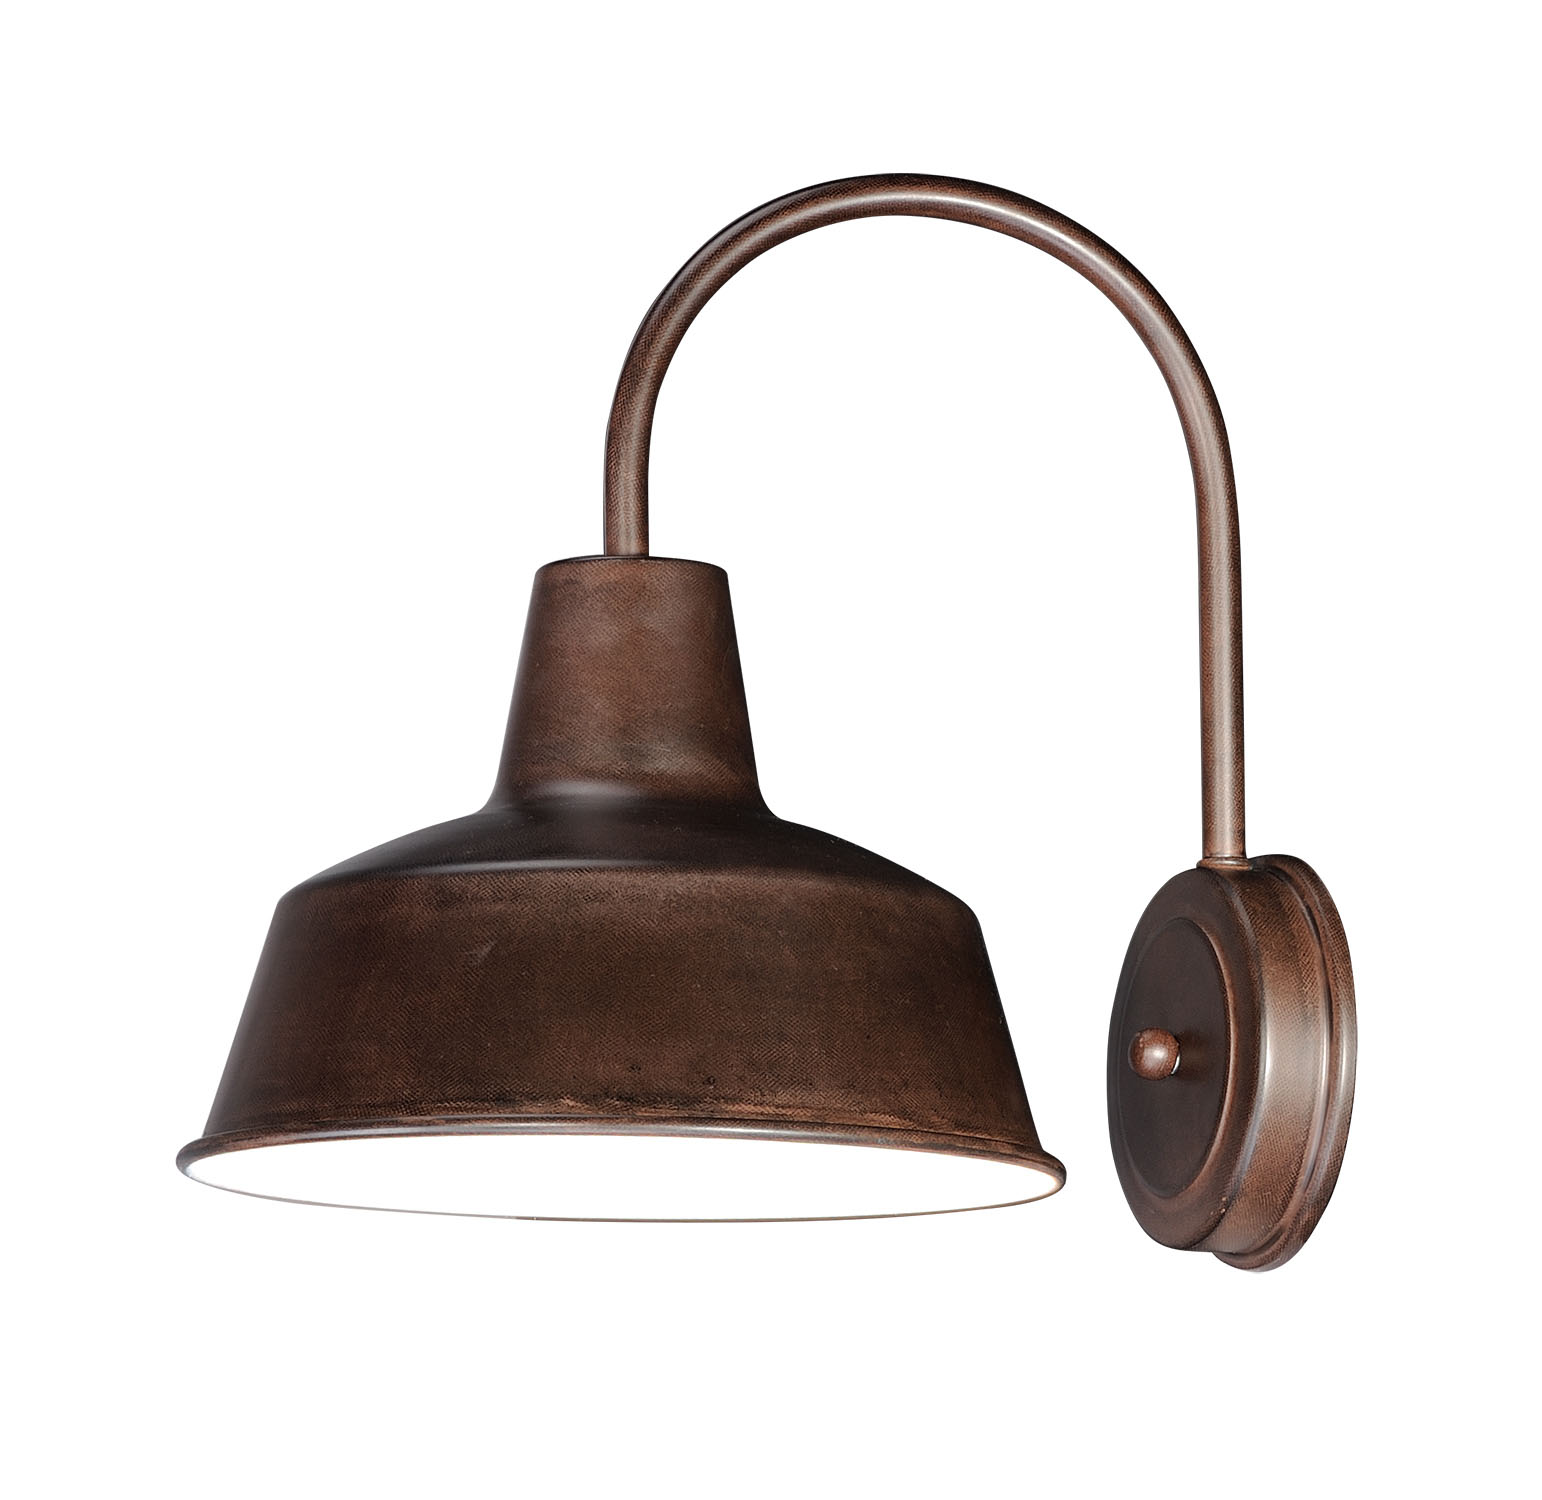 """Maxim 35016 Pier M Single Light 13-1/4"""" Tall Outdoor Wall Sconce with Metal Ware"""